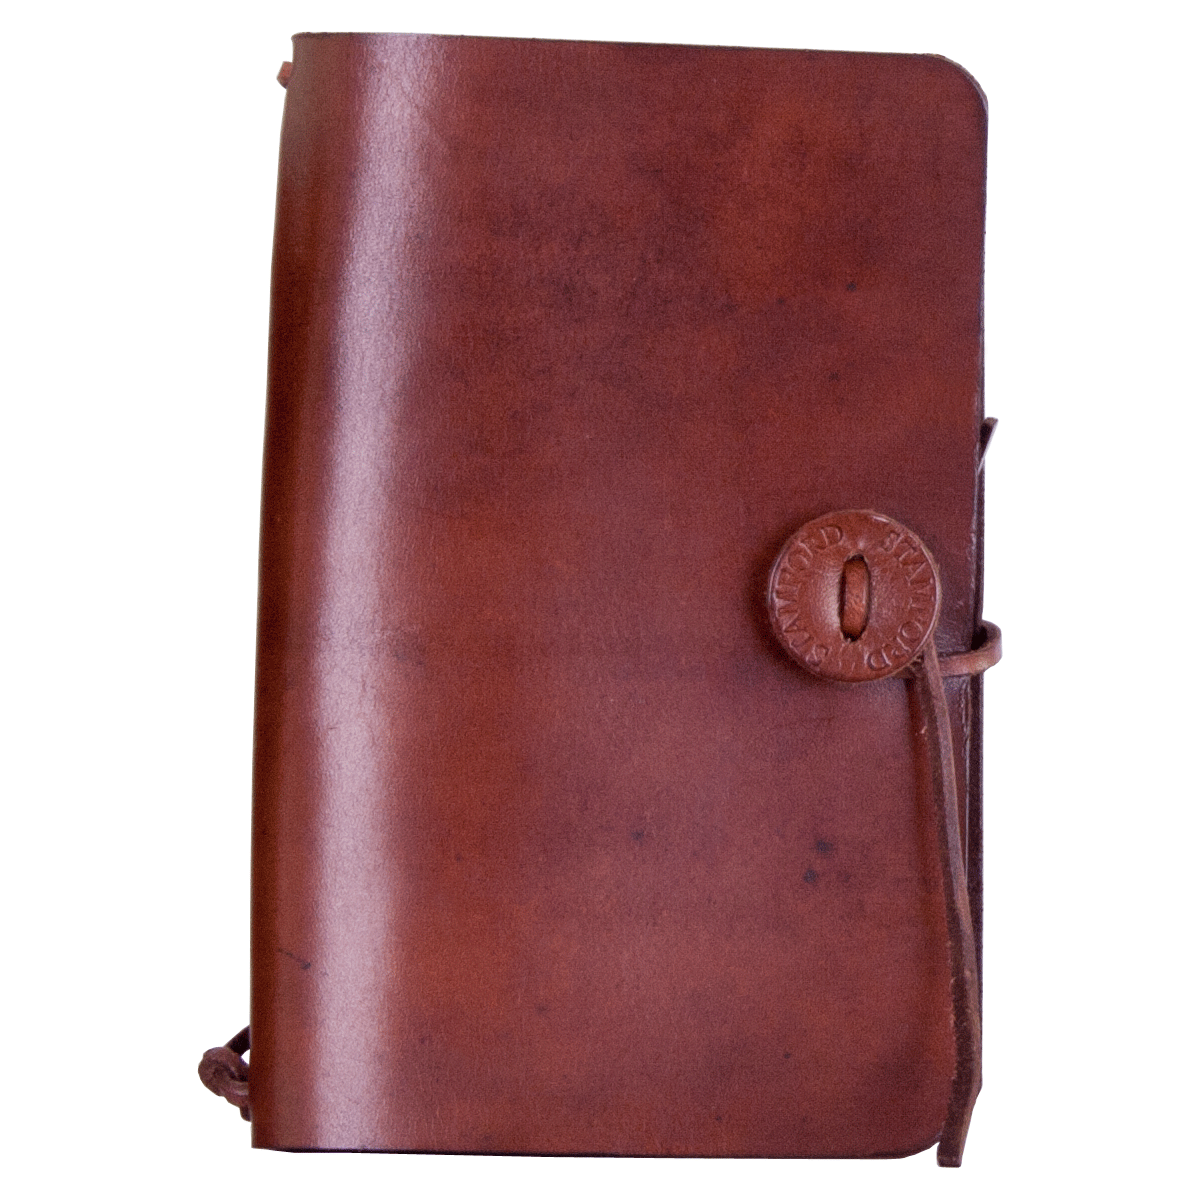 Pocket Traveller Mid Brown, part of the Luxury Leather Travel Set